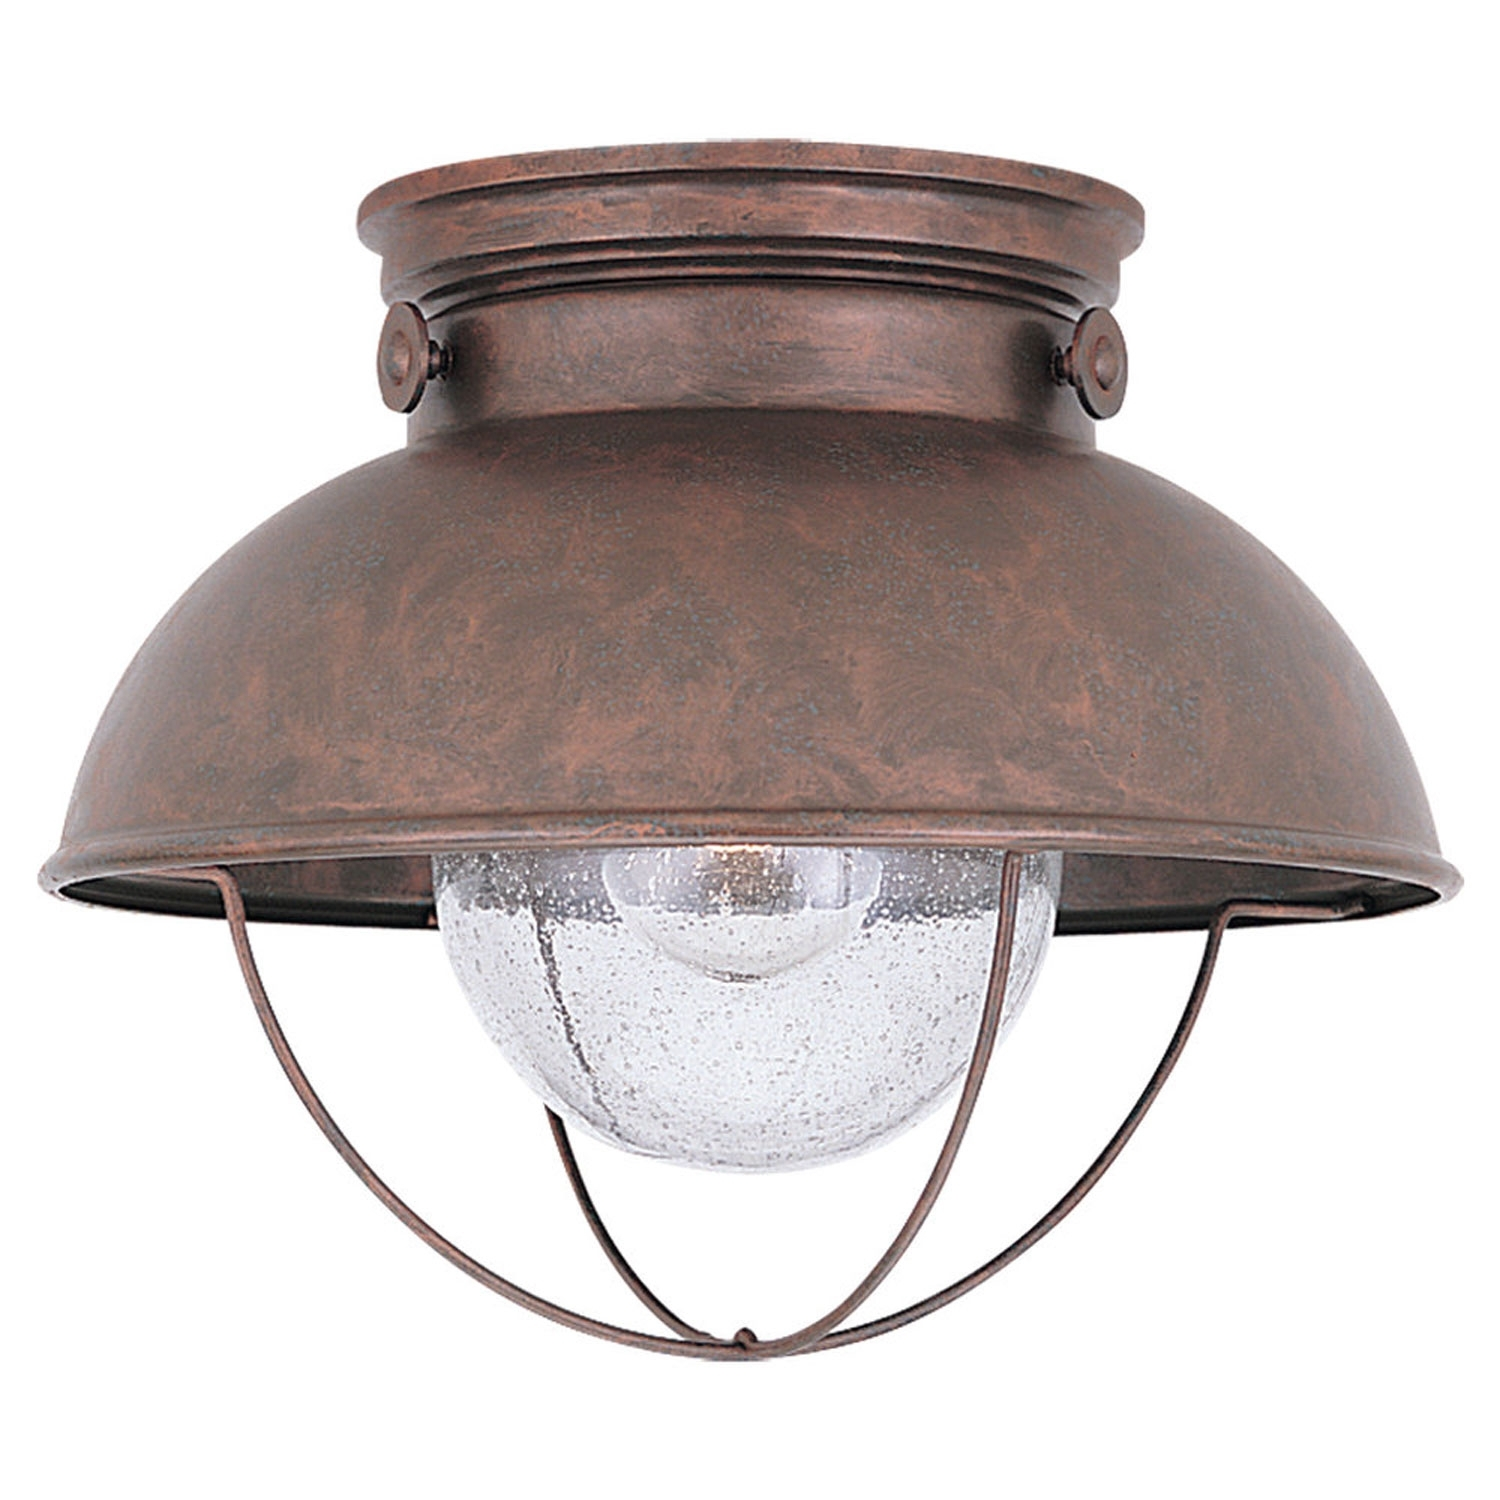 Sea Gull Lighting Sebring Weathered Copper Outdoor Ceiling Light Inside Outdoor Ceiling Lights For Porch (#15 of 15)